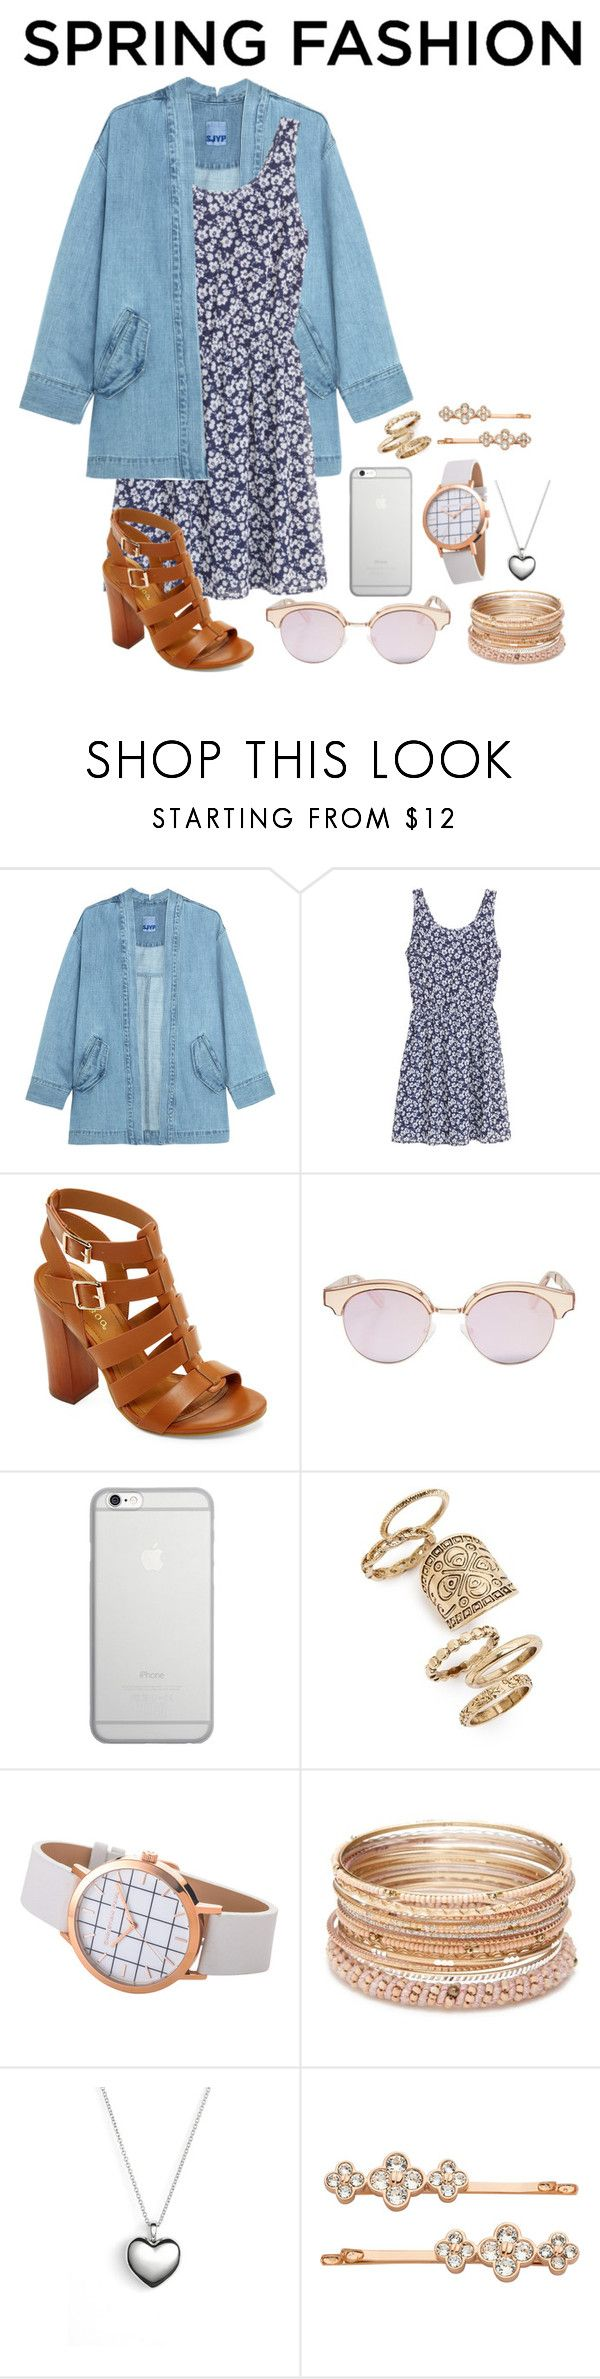 """Spring dress"" by samarinara ❤ liked on Polyvore featuring Steve J & Yoni P, H&M, Bamboo, Le Specs, Native Union, Topshop, Red Camel, Pandora and Henri Bendel"